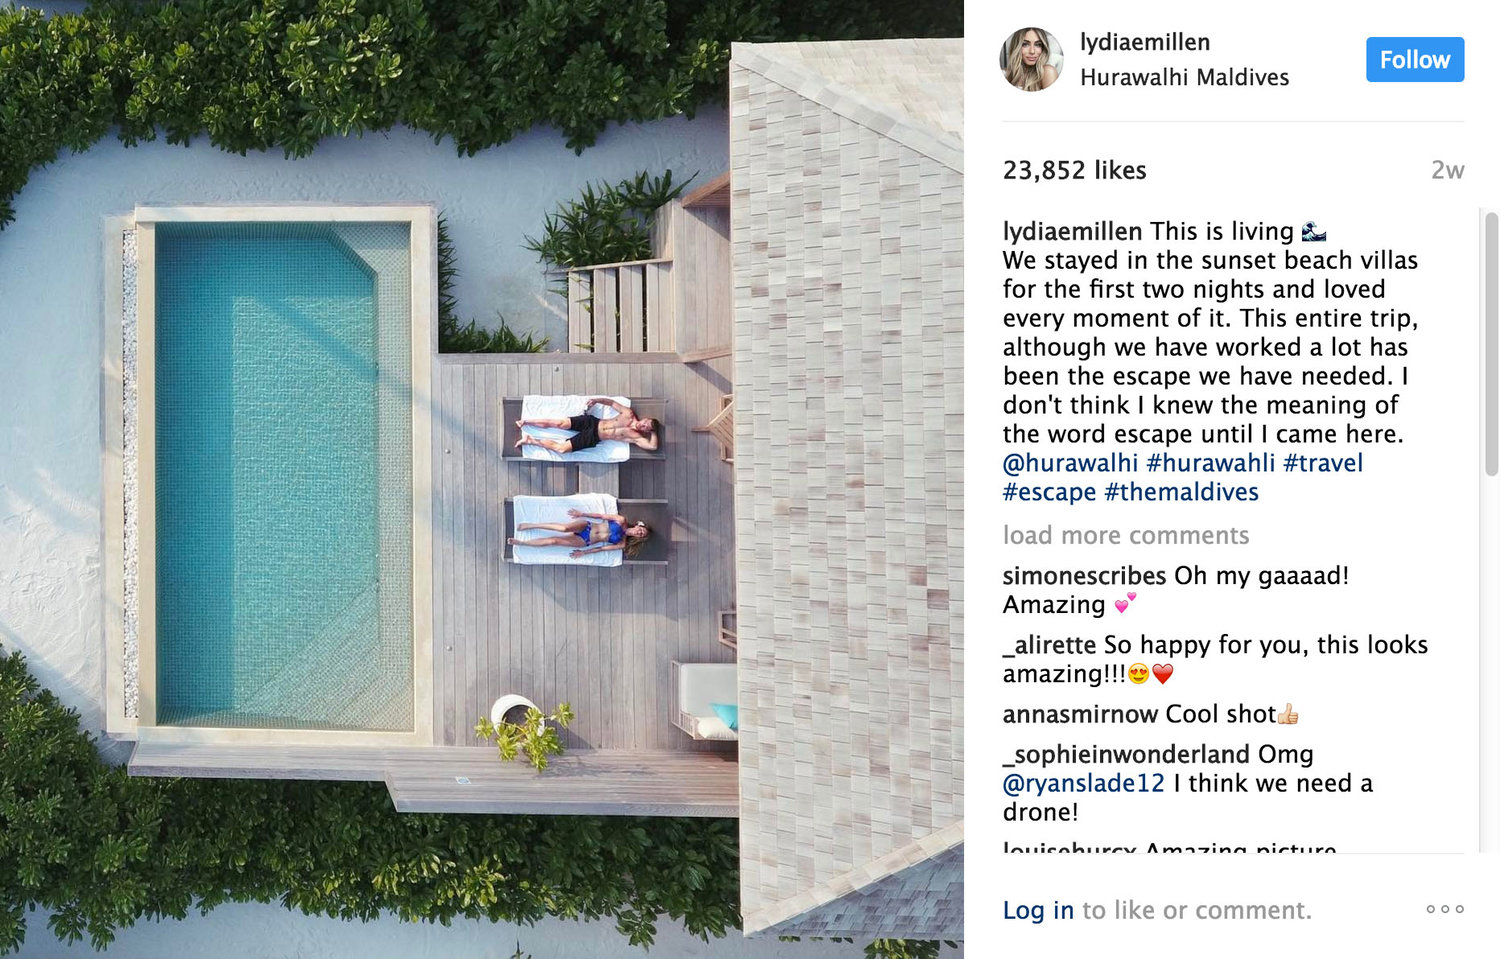 Hurawalhi Maldives + Selected Influencers - - Gifted Coverage Agreement, Trip Logistics, Influencer Negotiation & Briefing -